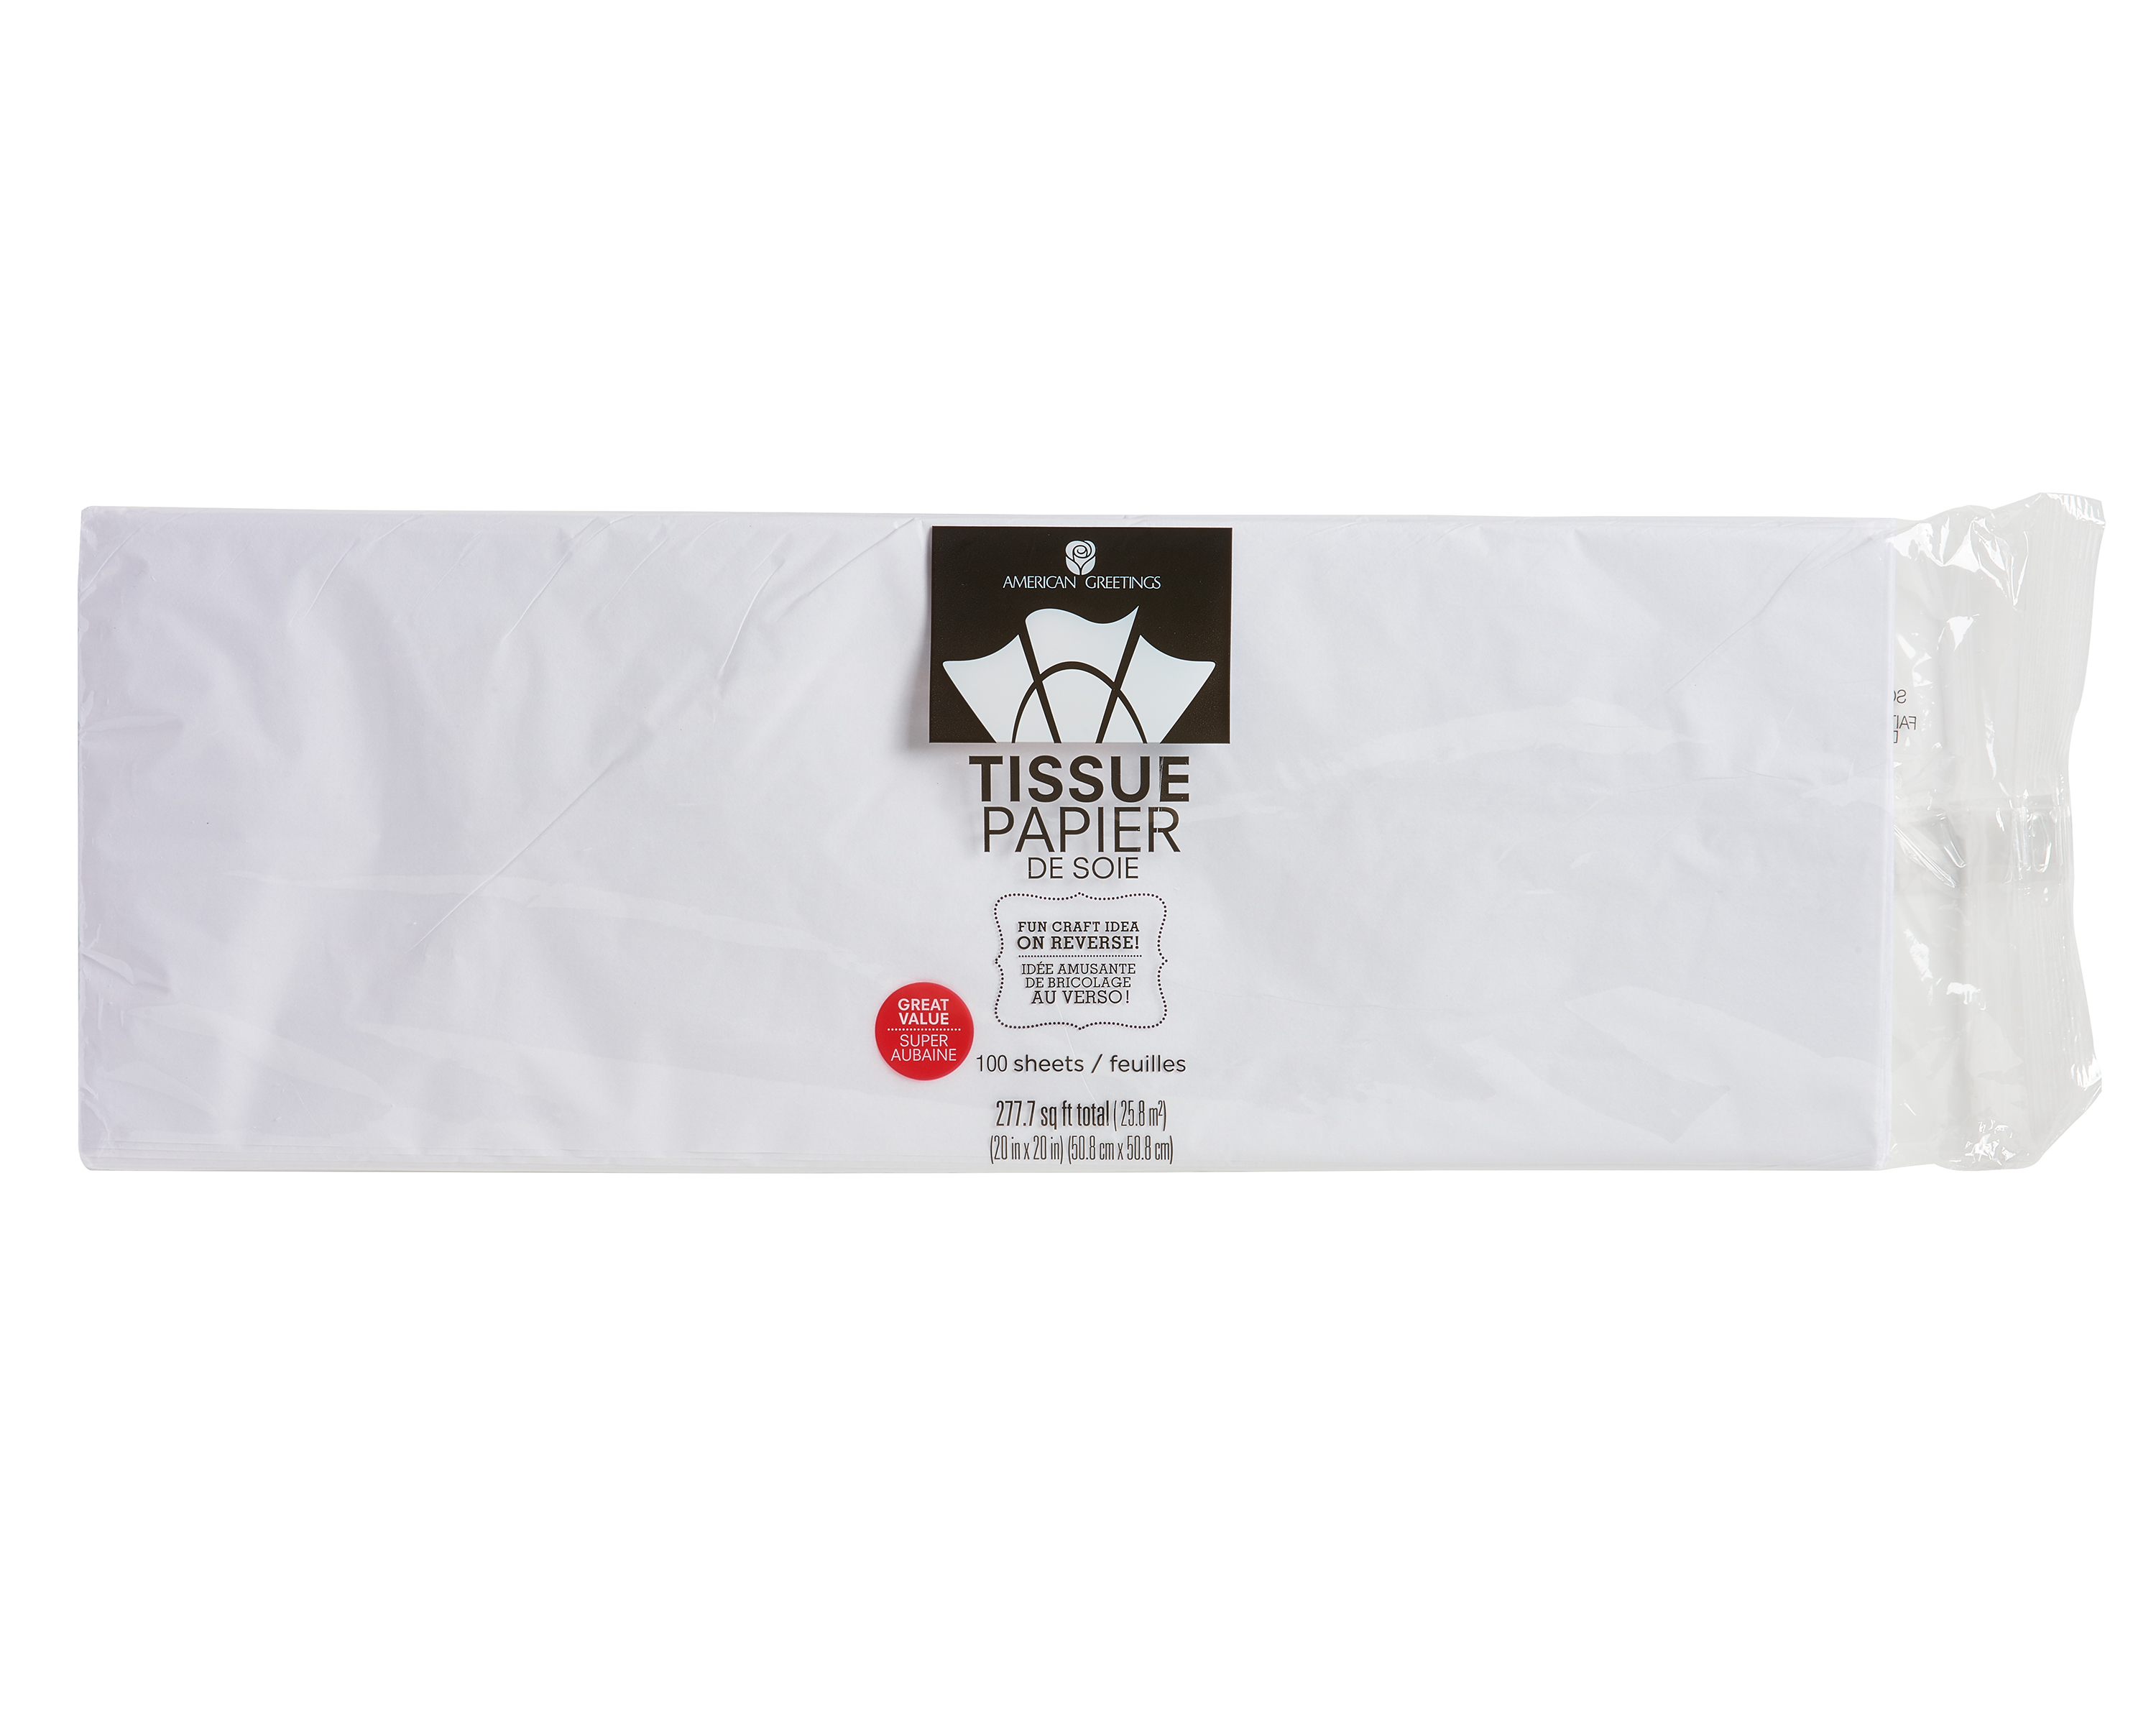 American Greetings White Tissue Paper 100 Sheets Walmart